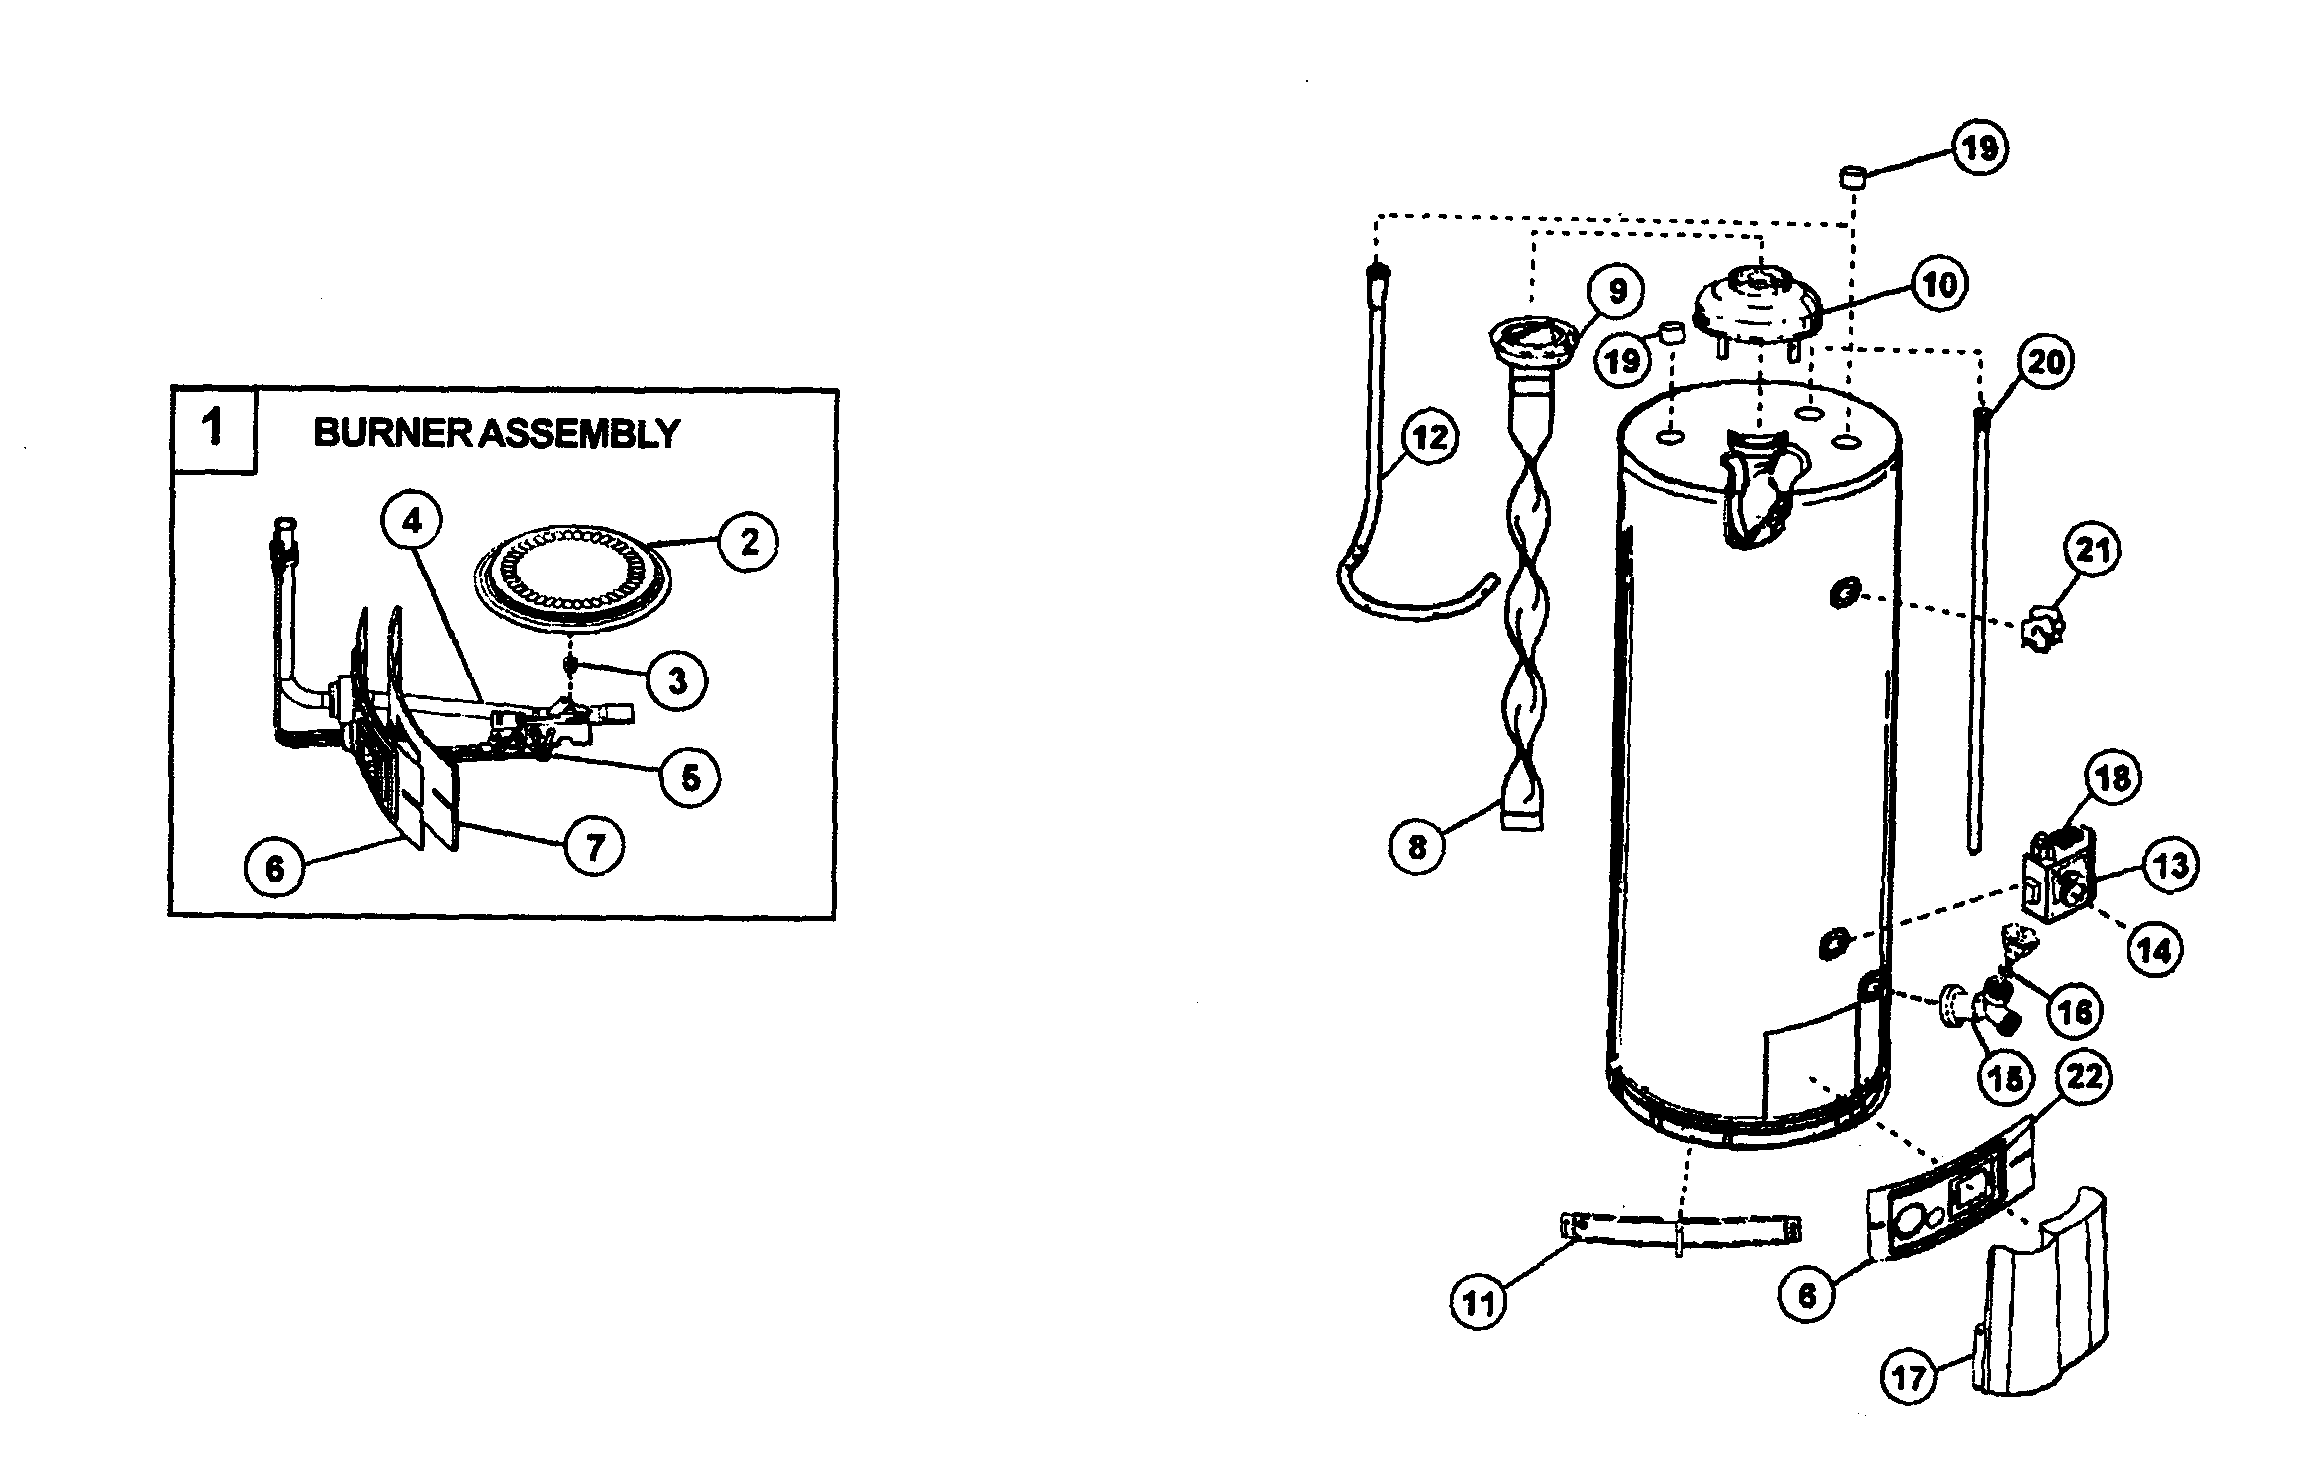 WATER HEATER Diagram & Parts List for Model 153339260